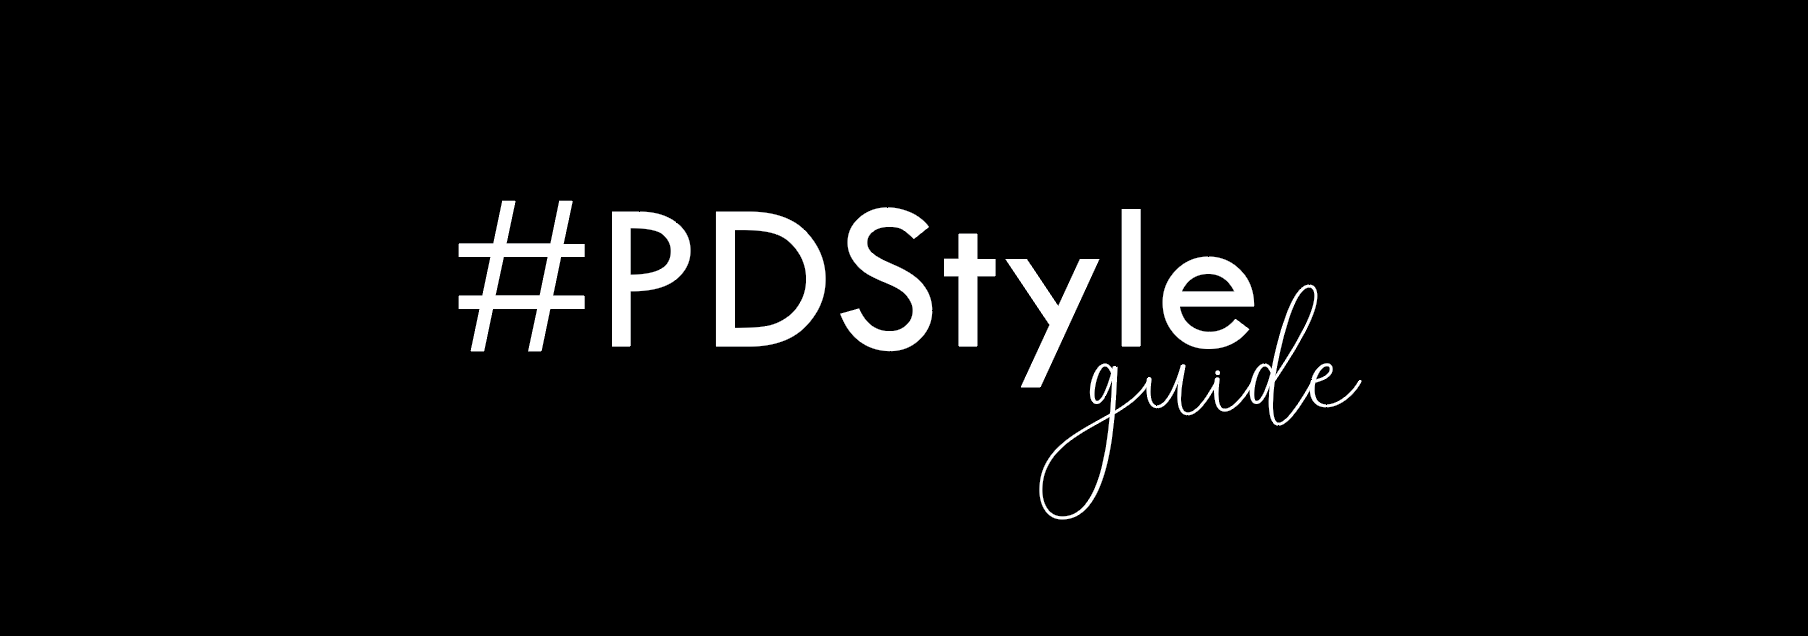 #pdstyle